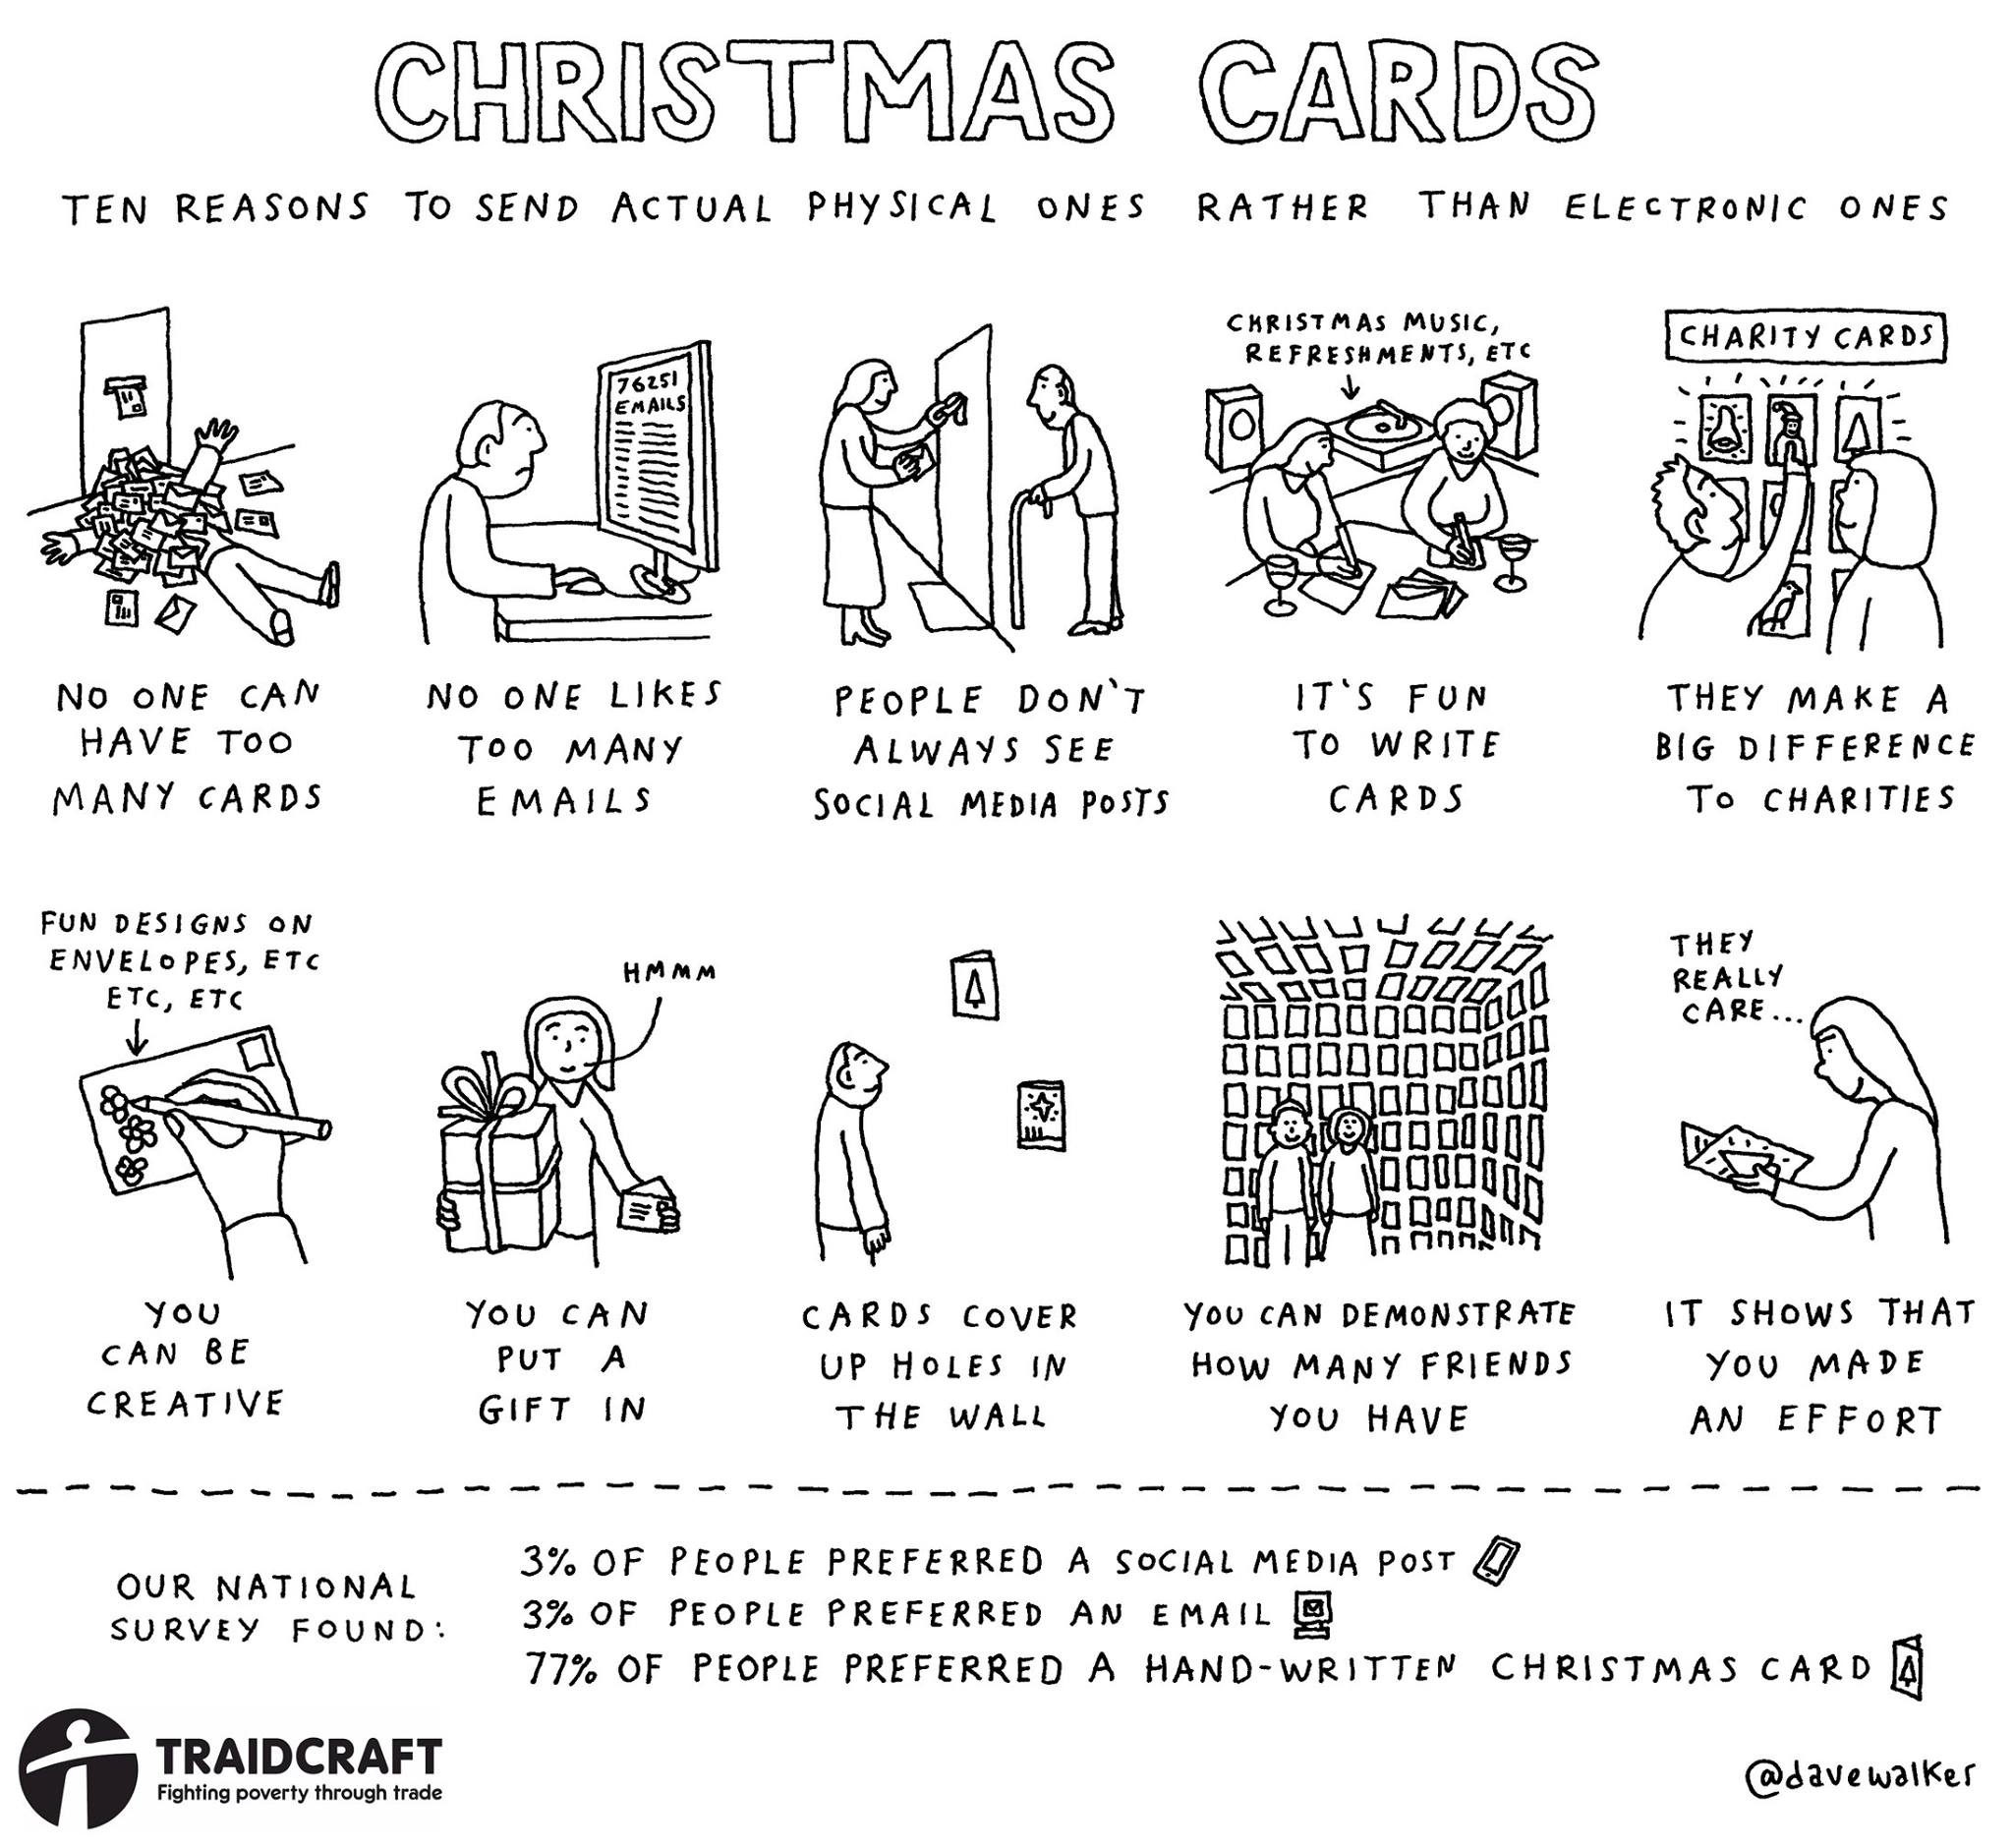 10 Reasons to send Christmas cards handwritten Christmas cards